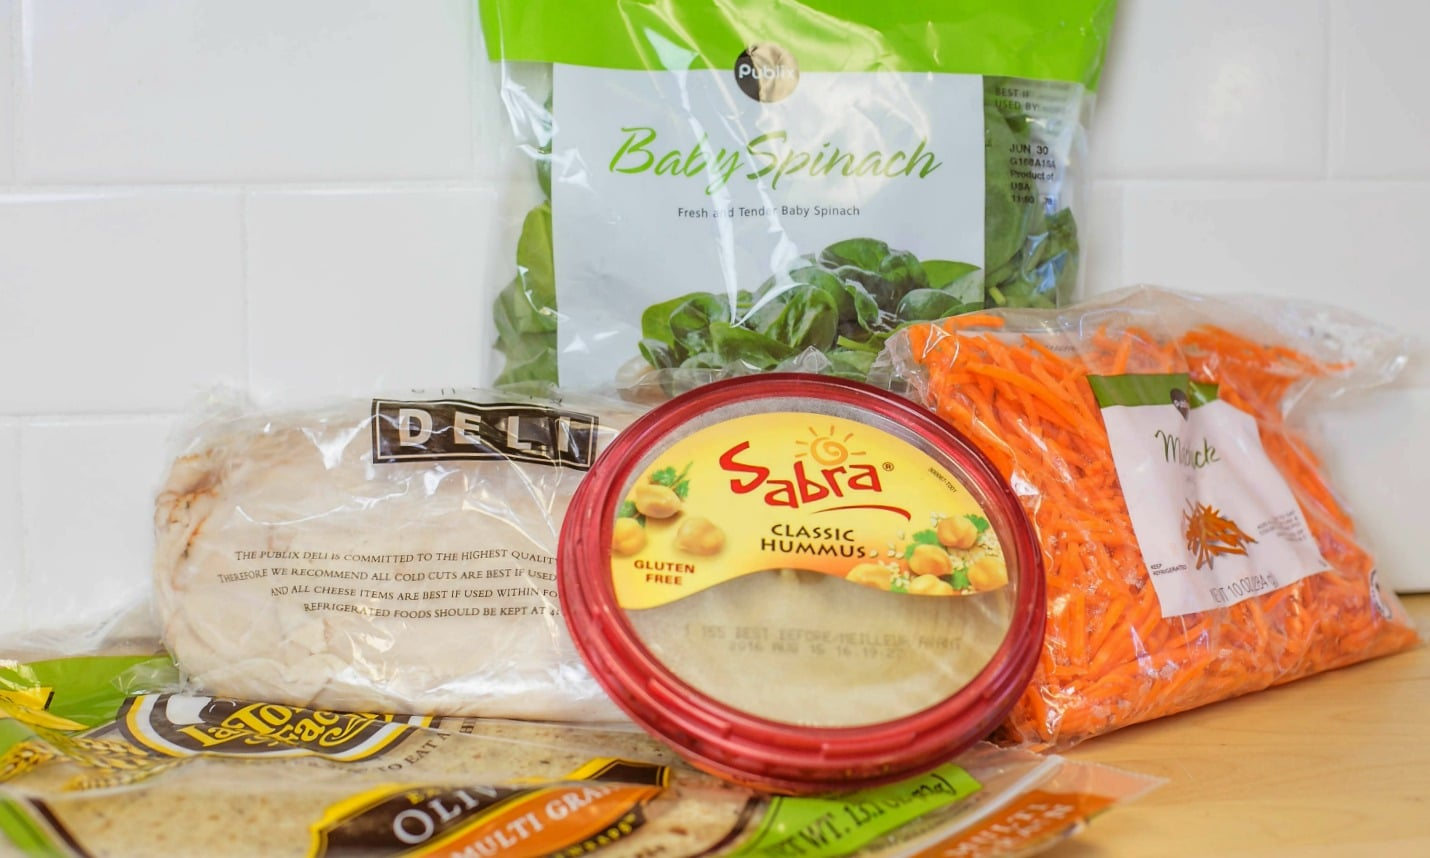 Assemble the ingredients for these quick and easy, make-ahead wraps: deli meat, hummus, spinach, carrots and wraps.